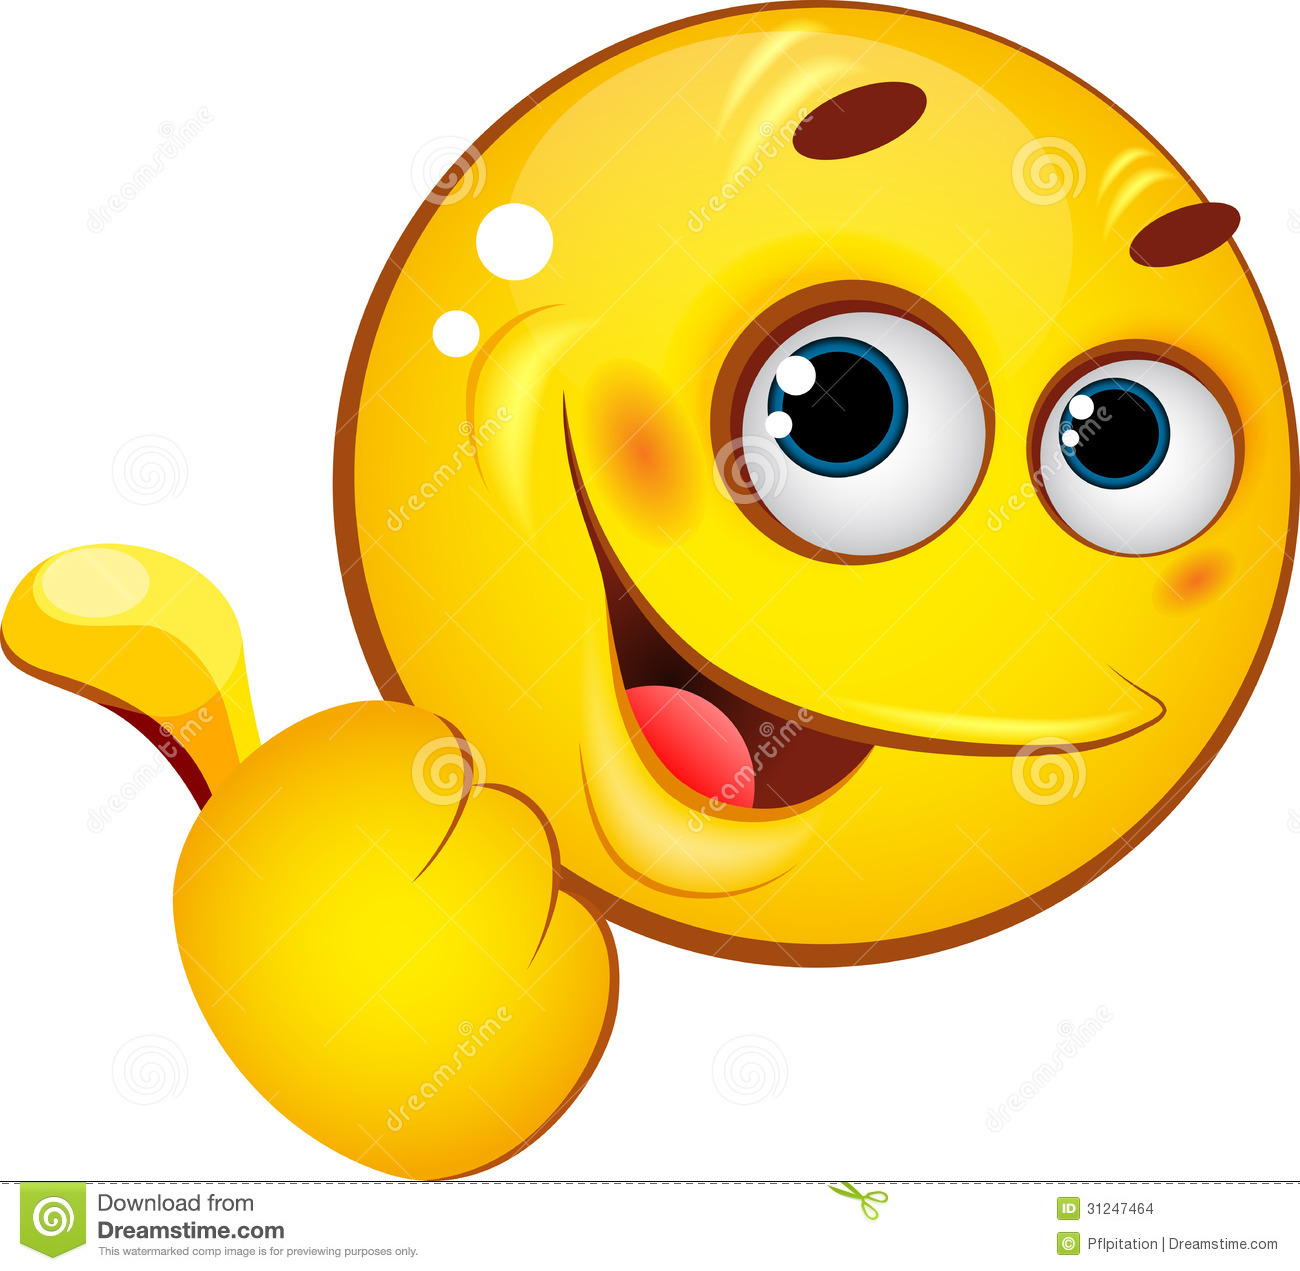 1300x1271 Smiley Face Thumbs Up Clipart, Free Smiley Face Thumbs Up Clipart